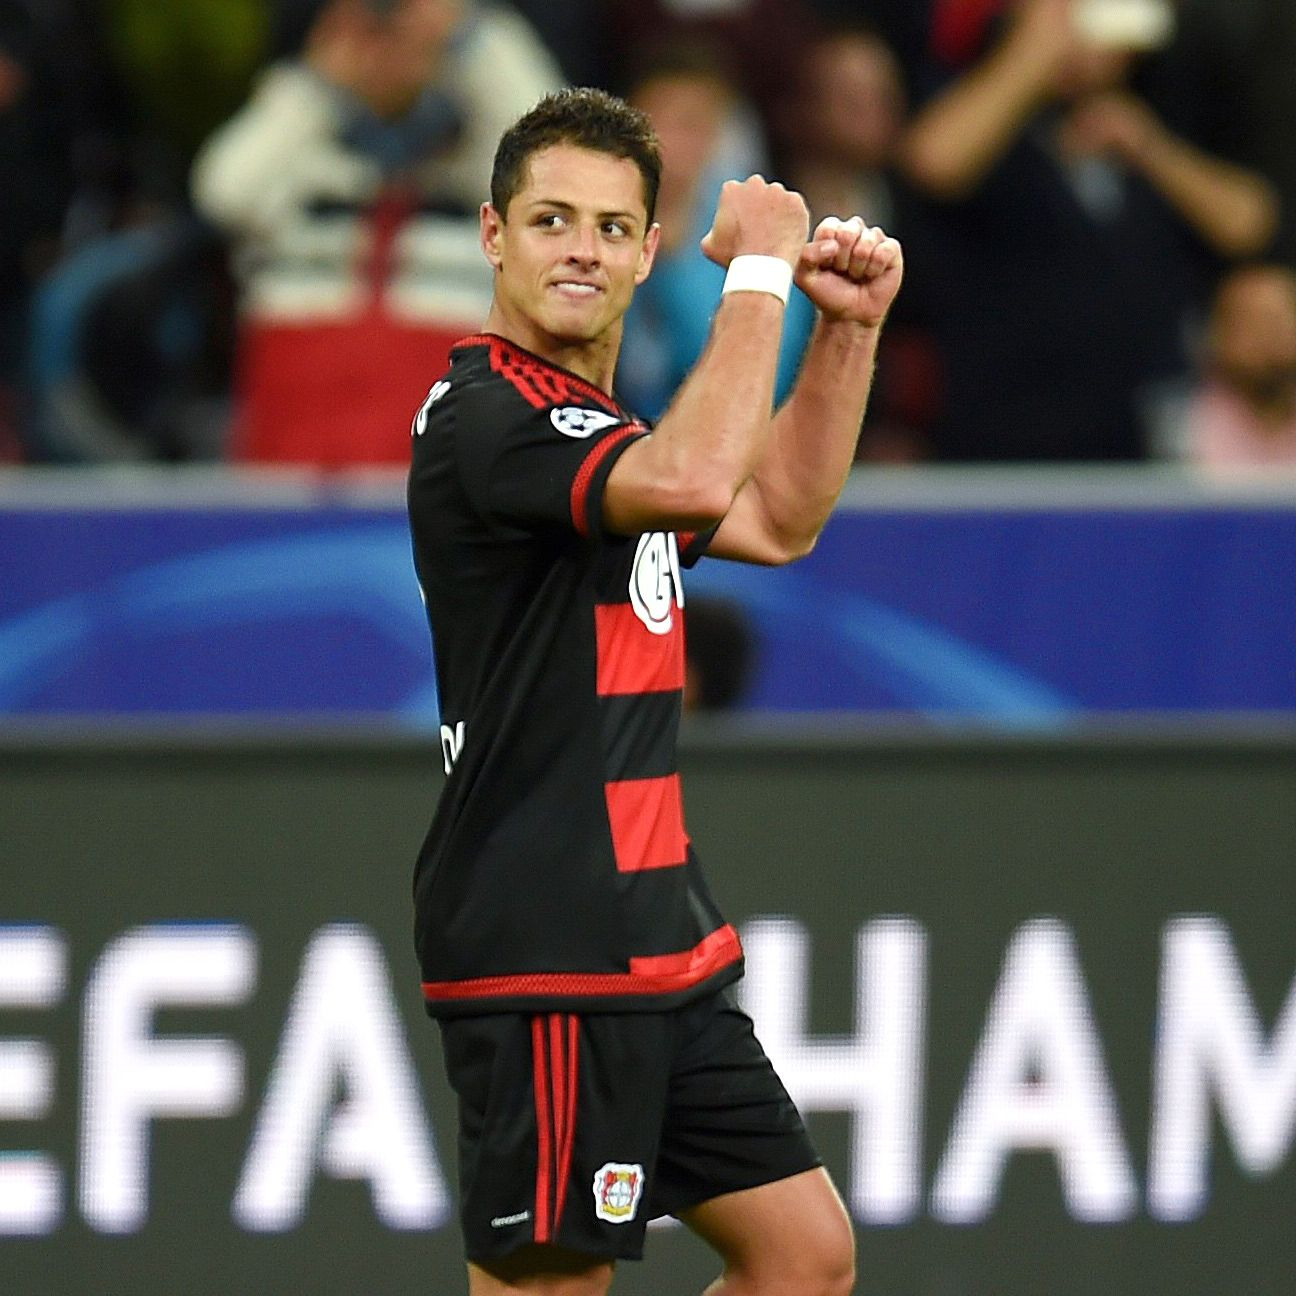 Chicharito Hernandez helped lead Bayer Leverkusen to three points in their Champions League opener against BATE.